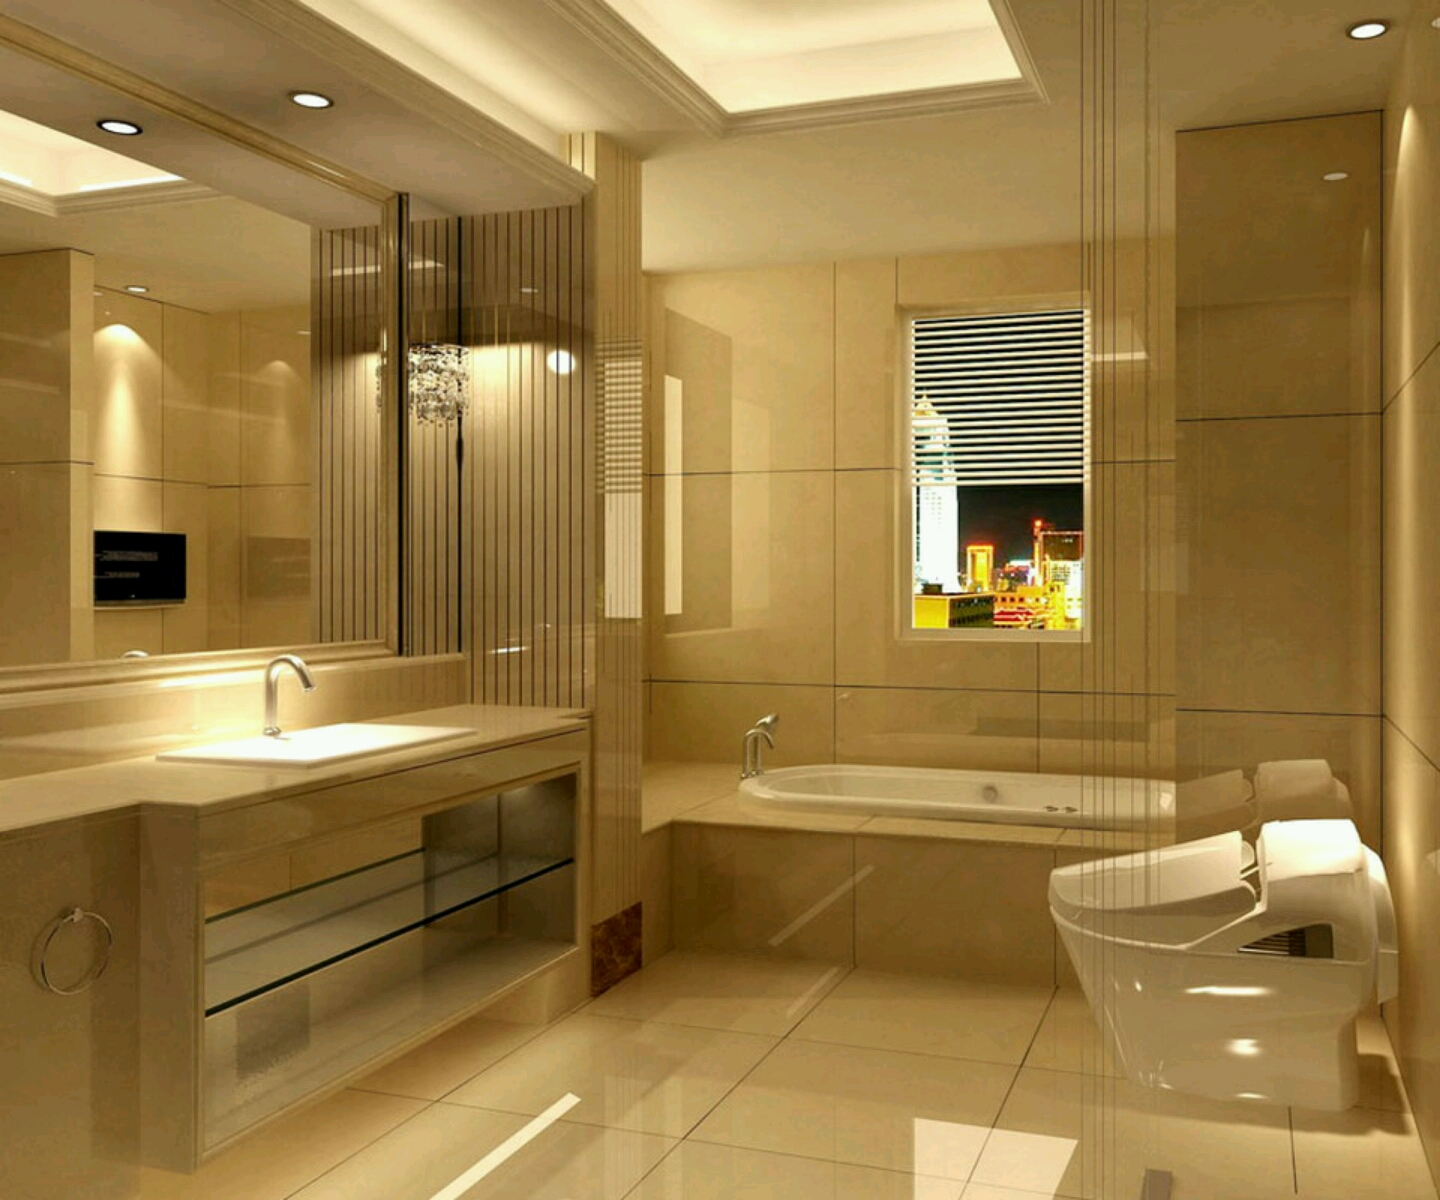 Modern bathrooms setting ideas furniture gallery for New bathroom design ideas